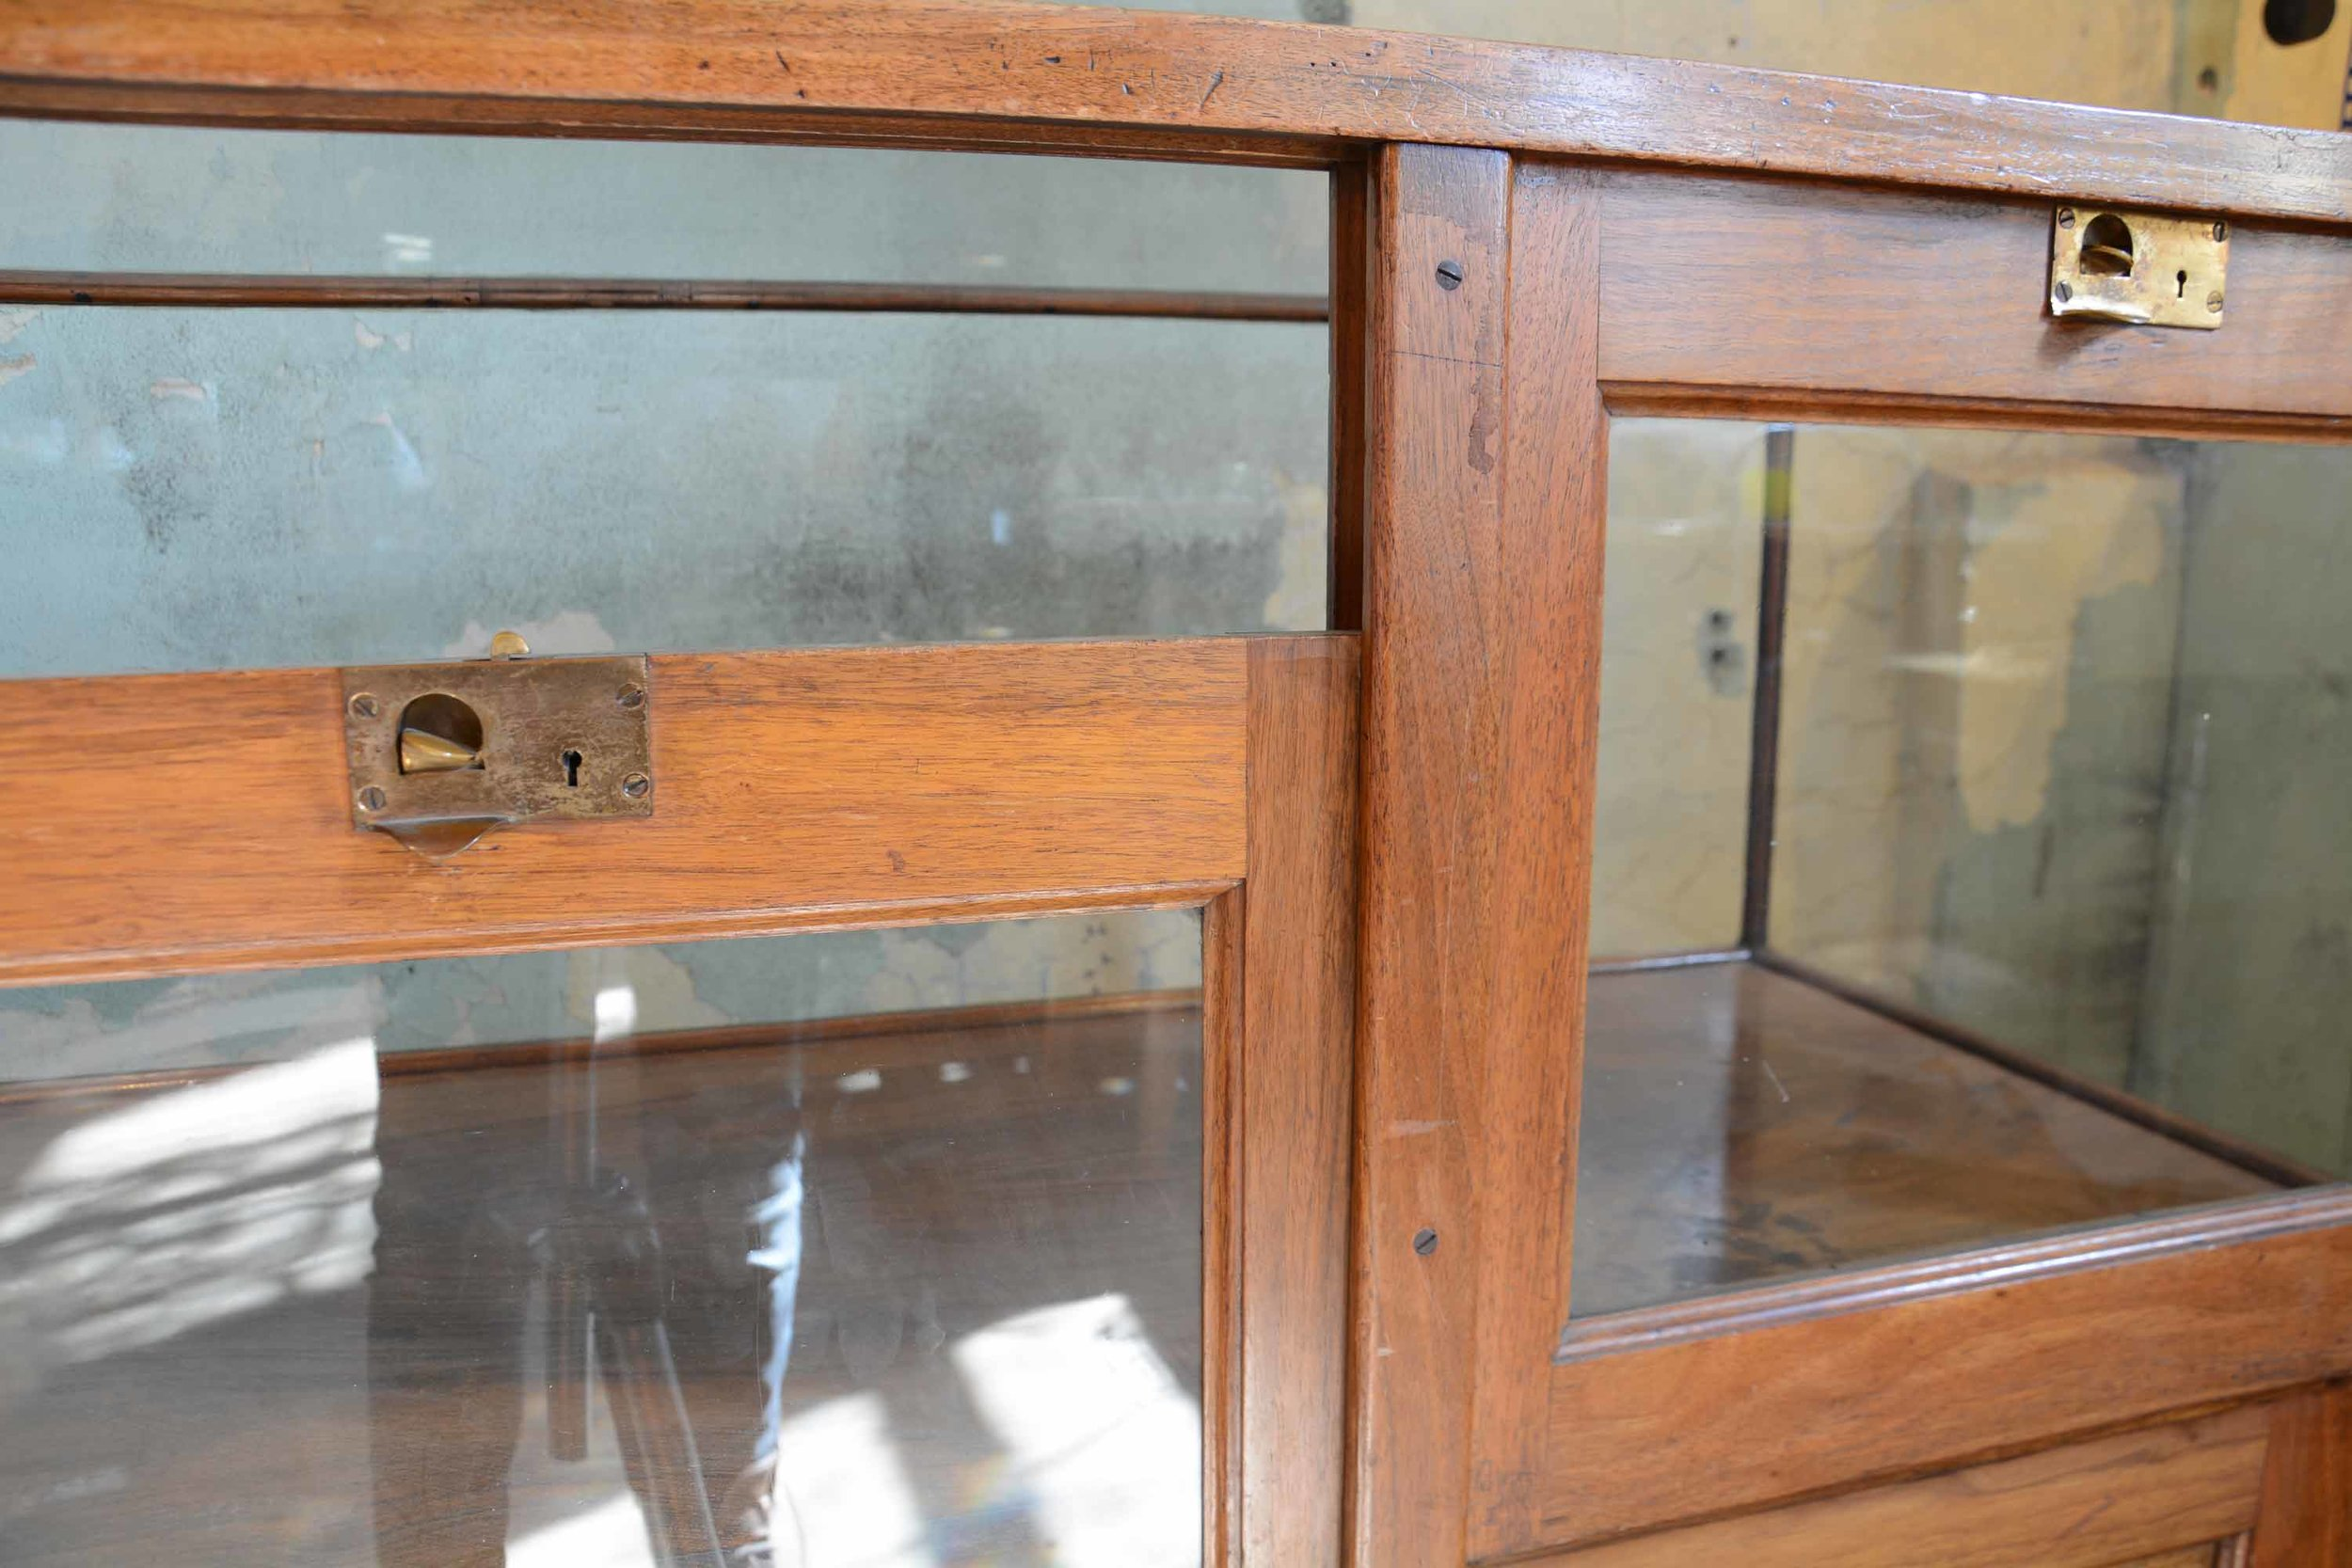 46917-display-case-with-drawers-BACK-DETAIL.jpg